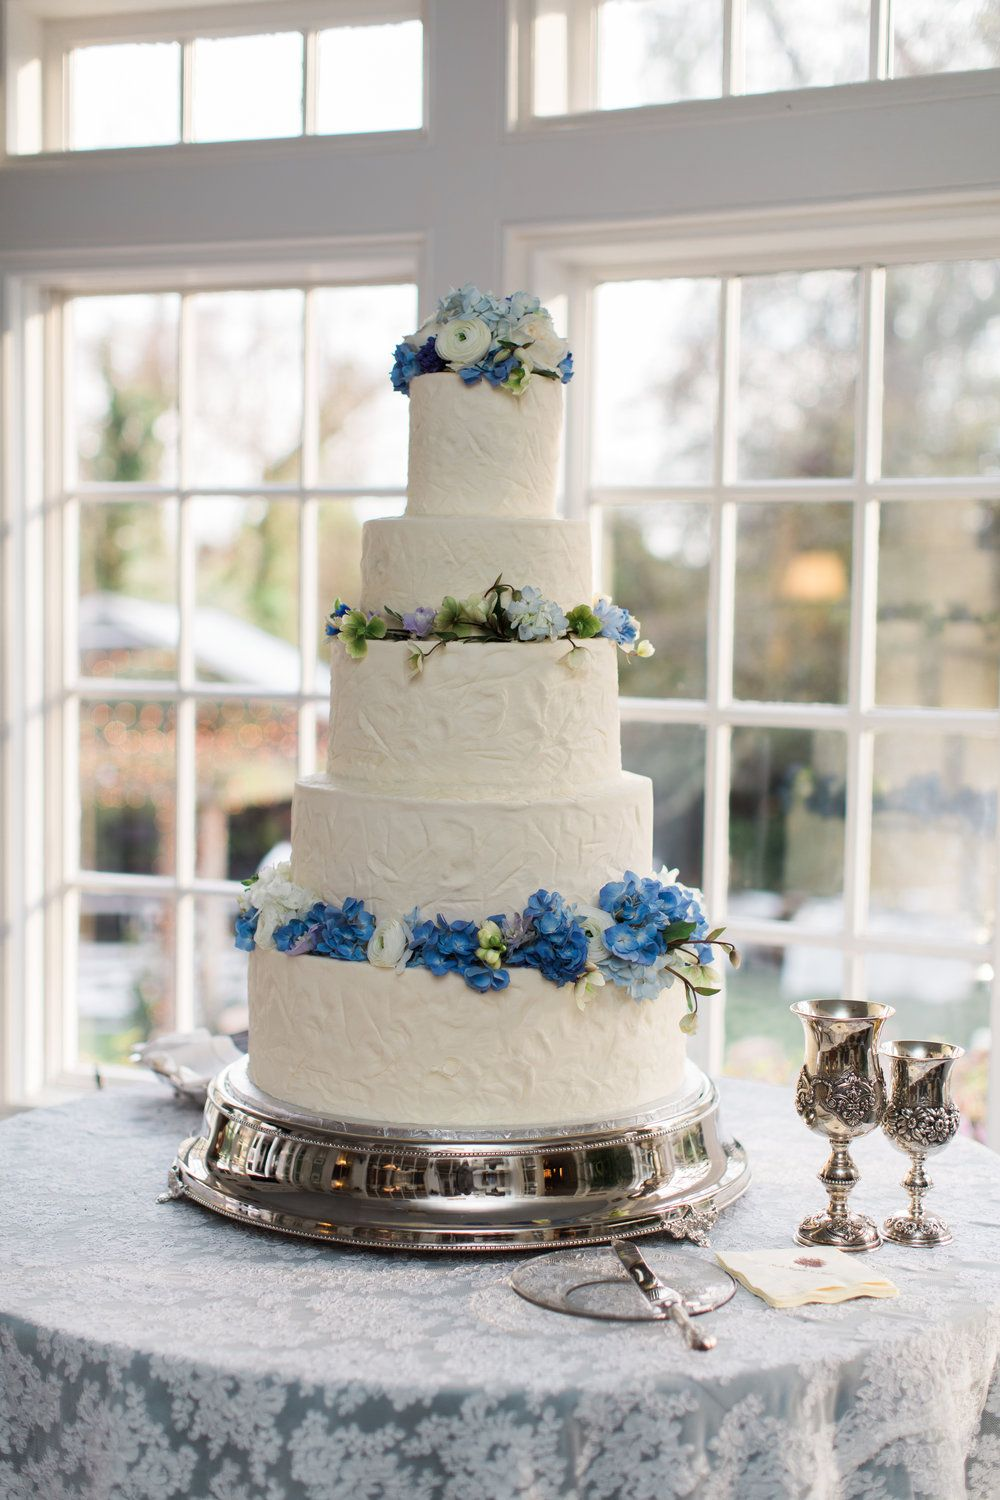 Wedding Cake Inspiration. Floral U0026 Event Design By Greg Boulus Events.  Based Out Of